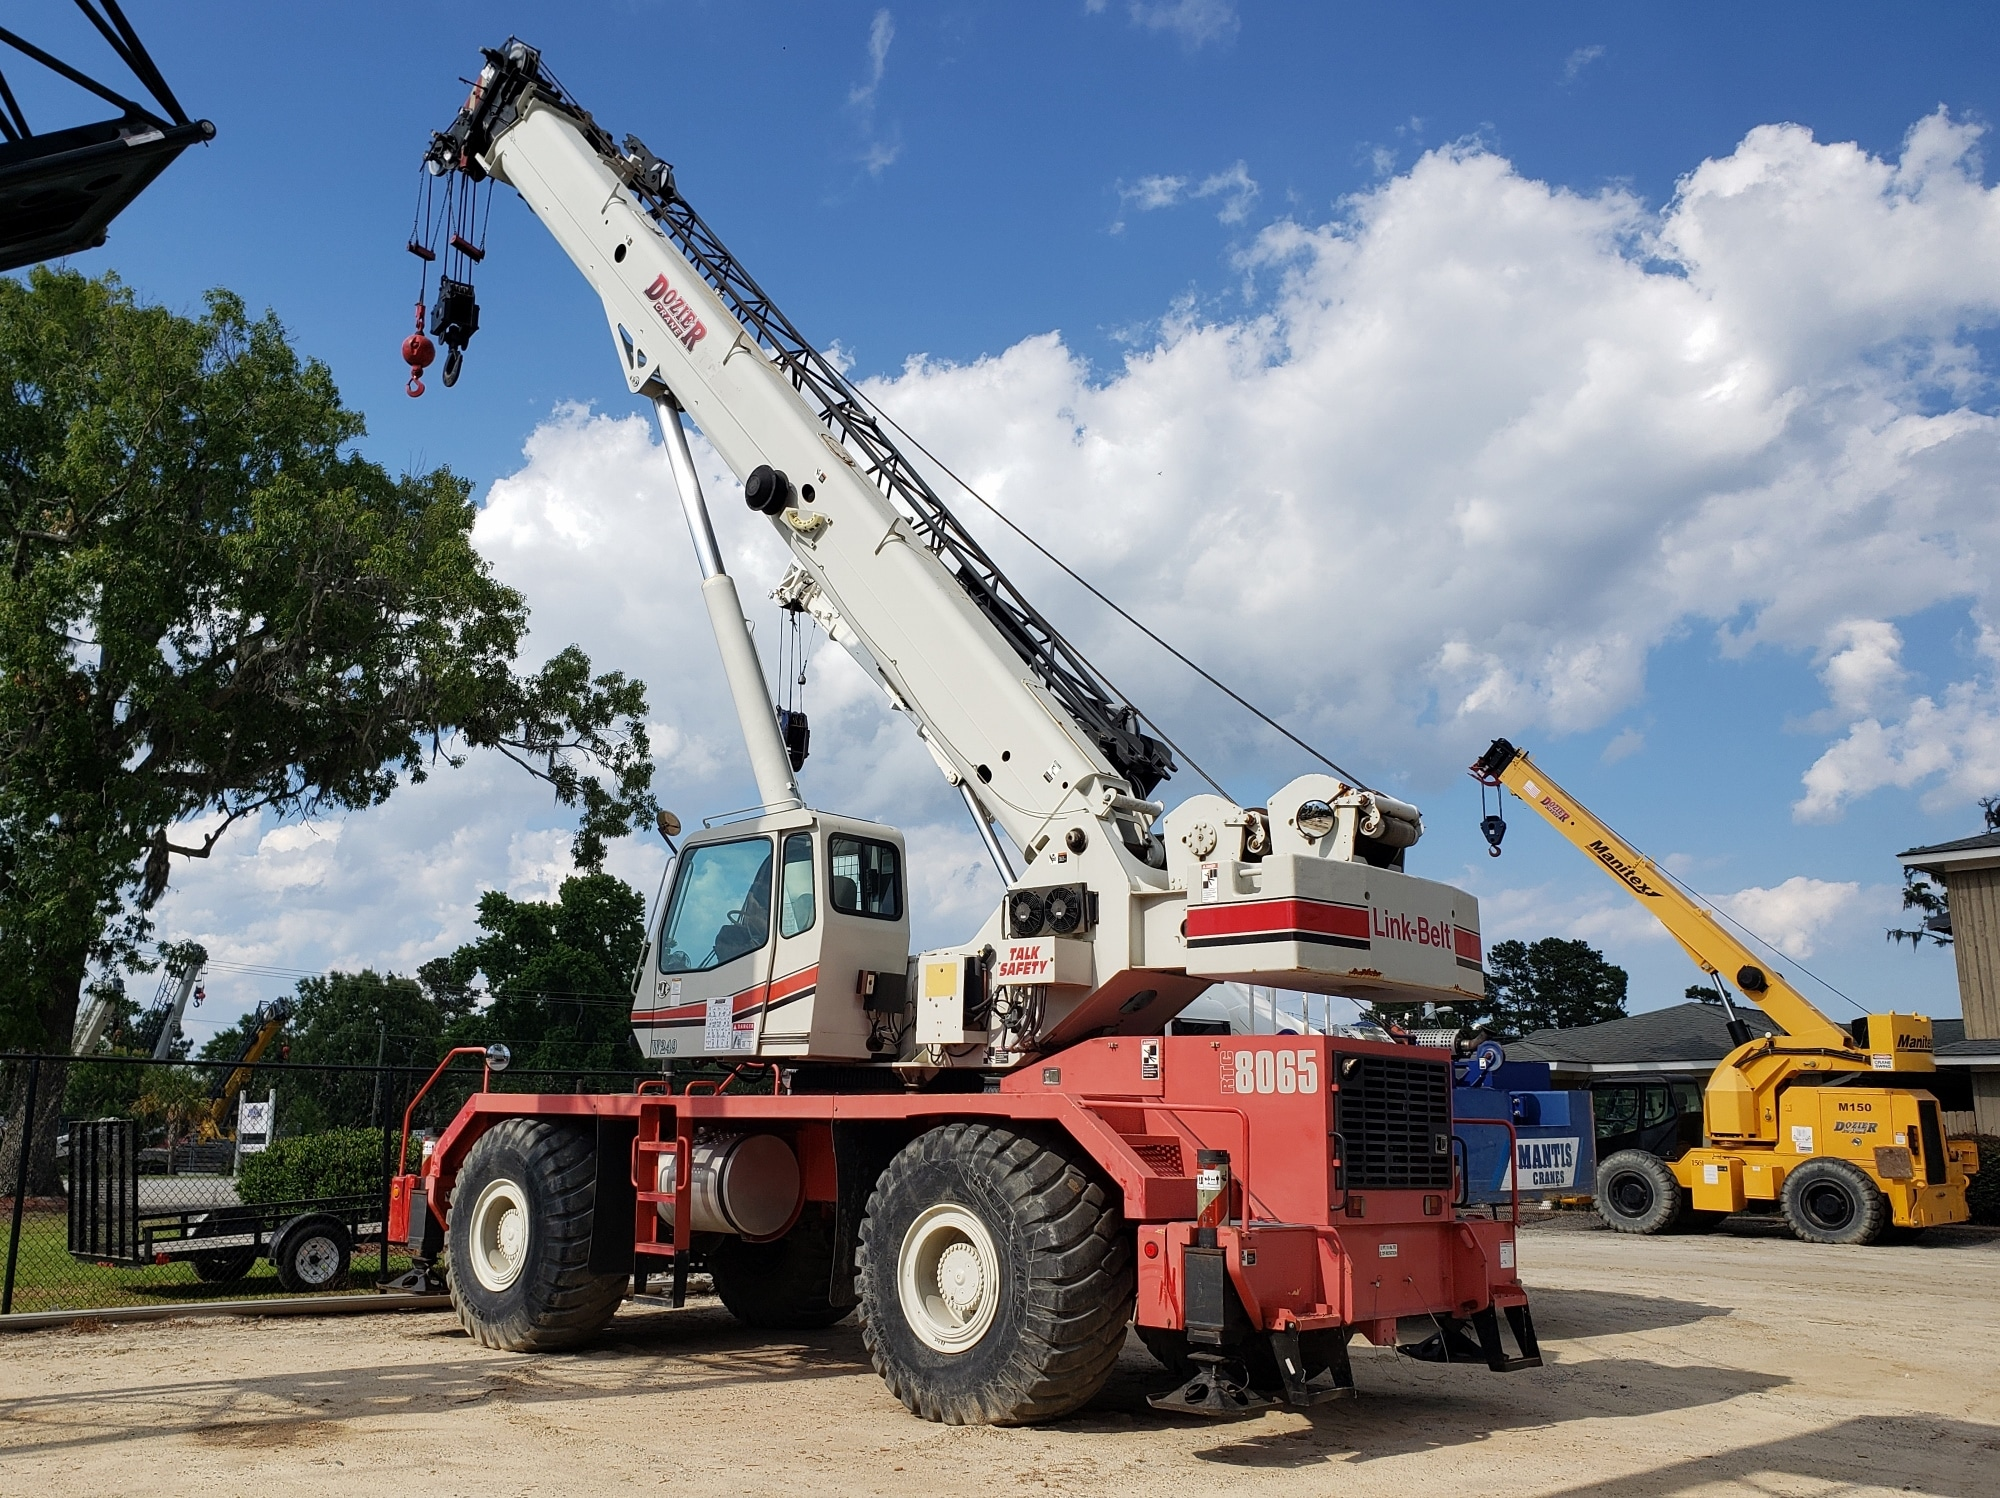 Rough Terrain Cranes | Cranes for Sale | Dozier Crane